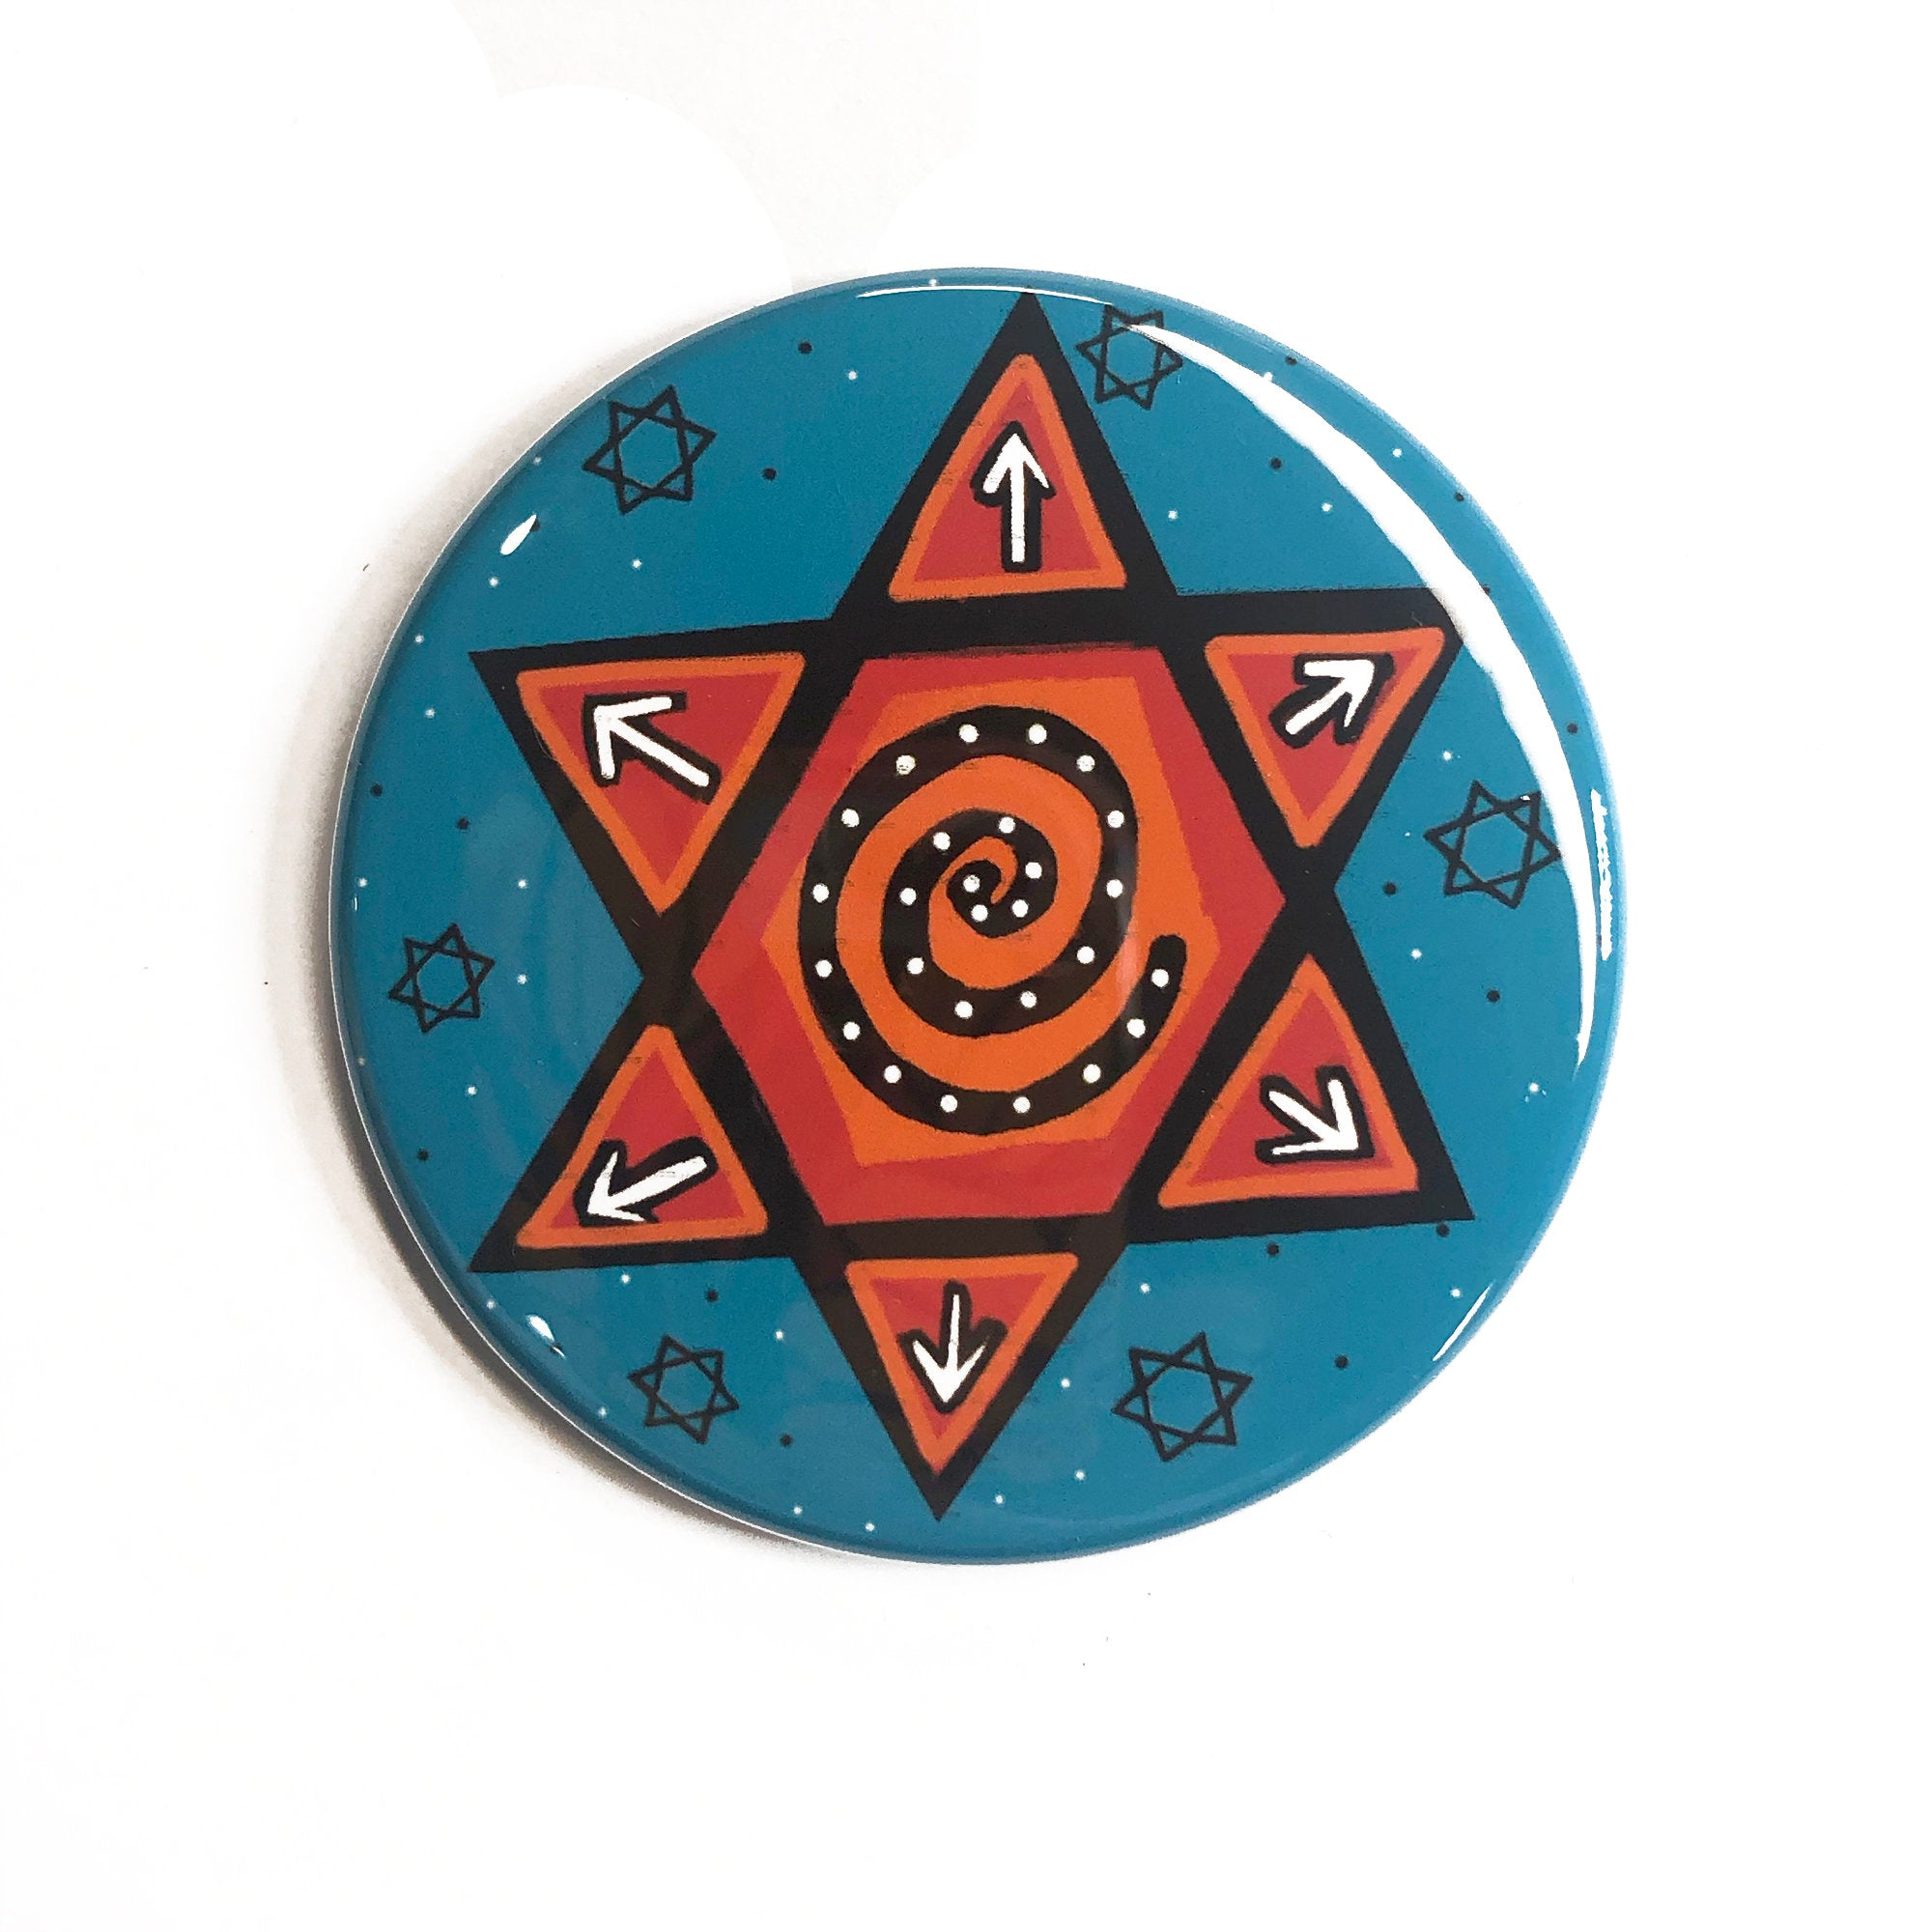 Jewish Star Magnet, Pin Back Button, or Pocket Mirror - Red Star of David on Blue - Hanukkah gift